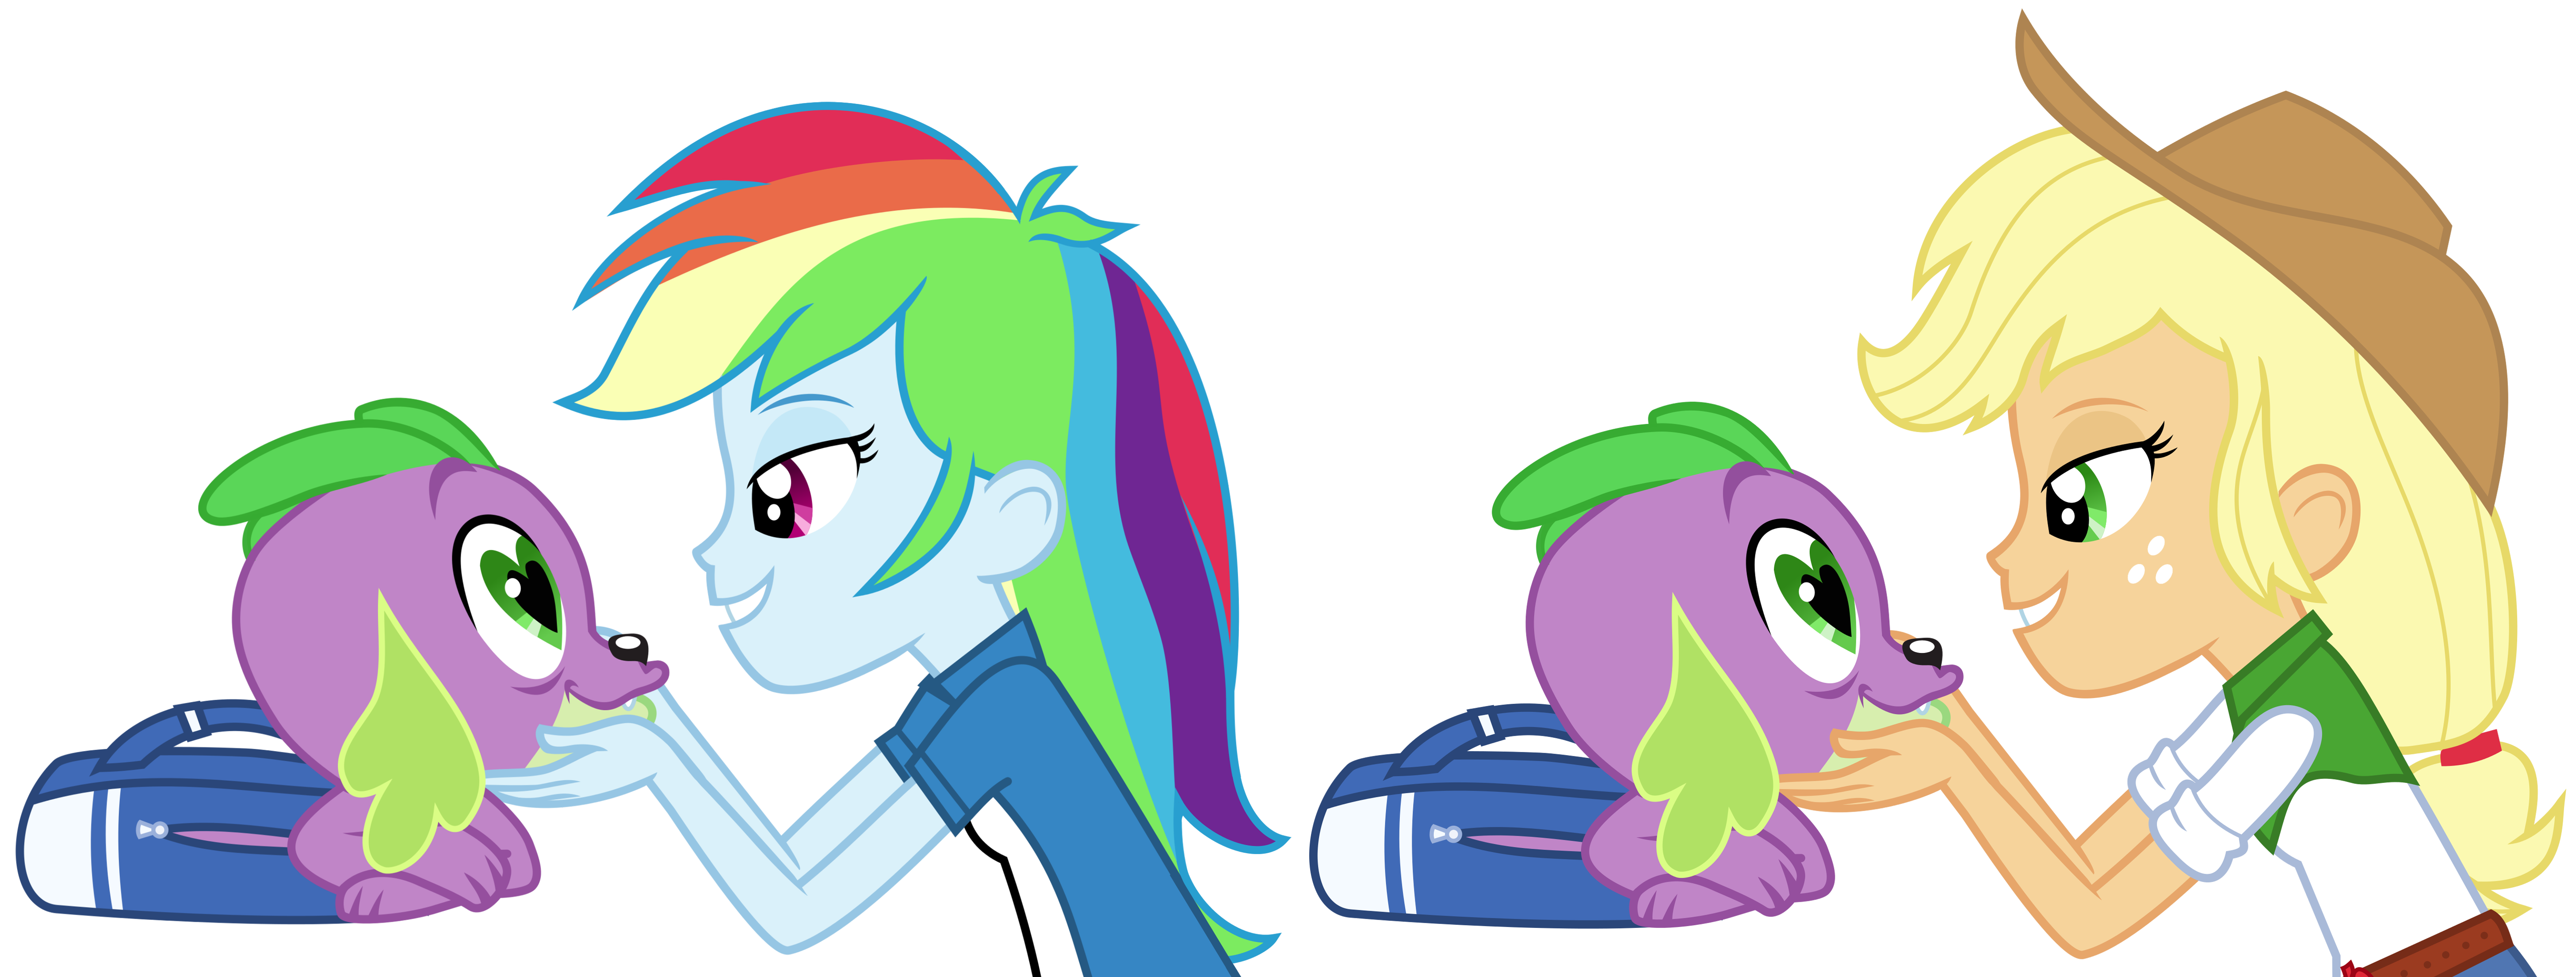 Spike gets ALL the Equestria Girls  part 2 by Titaniumdatsme on